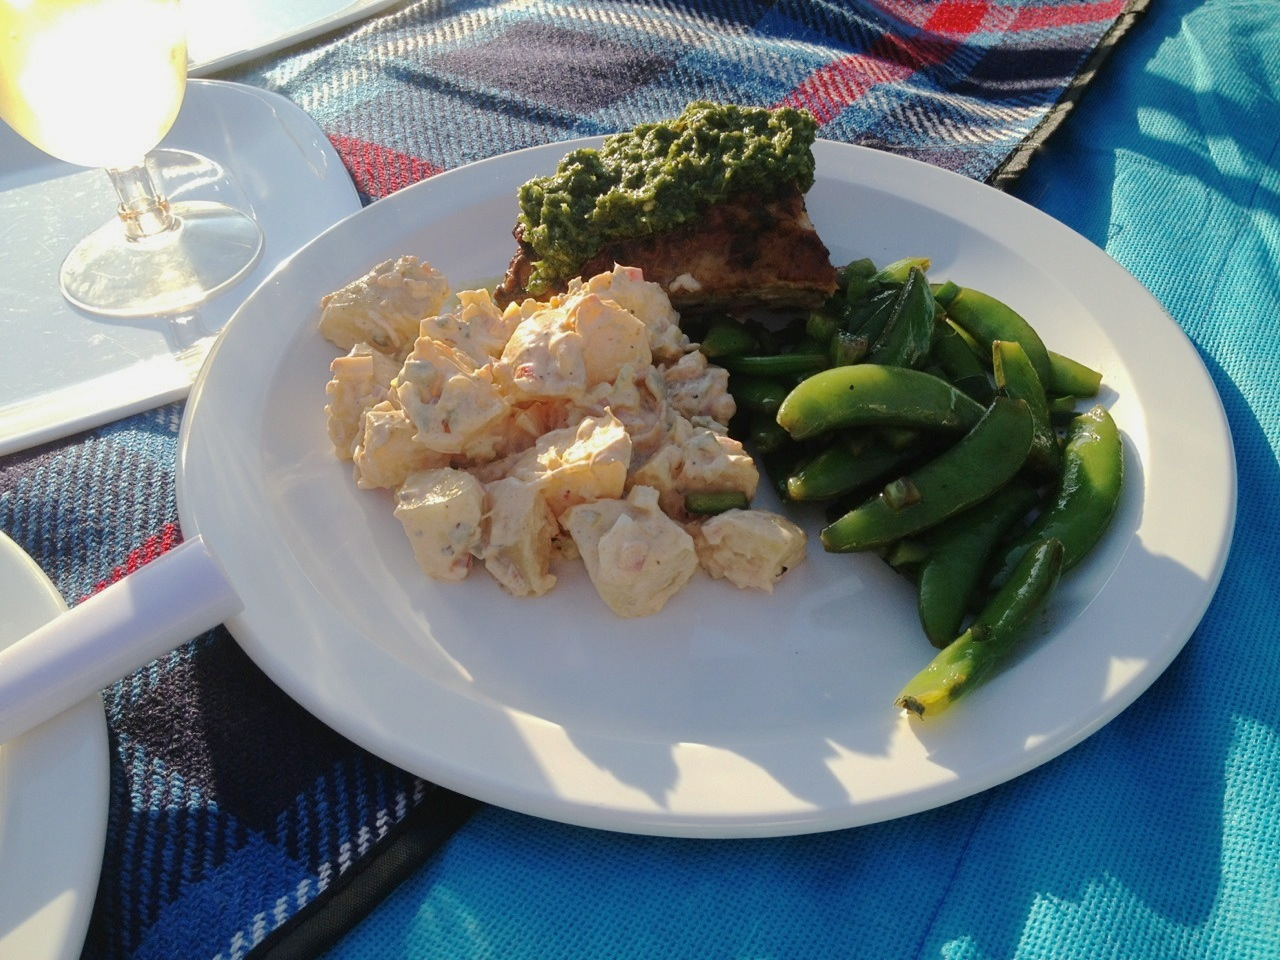 Roasted chicken with chimichurri sauce, potato salad and sugar snap pea salad on a white plate.